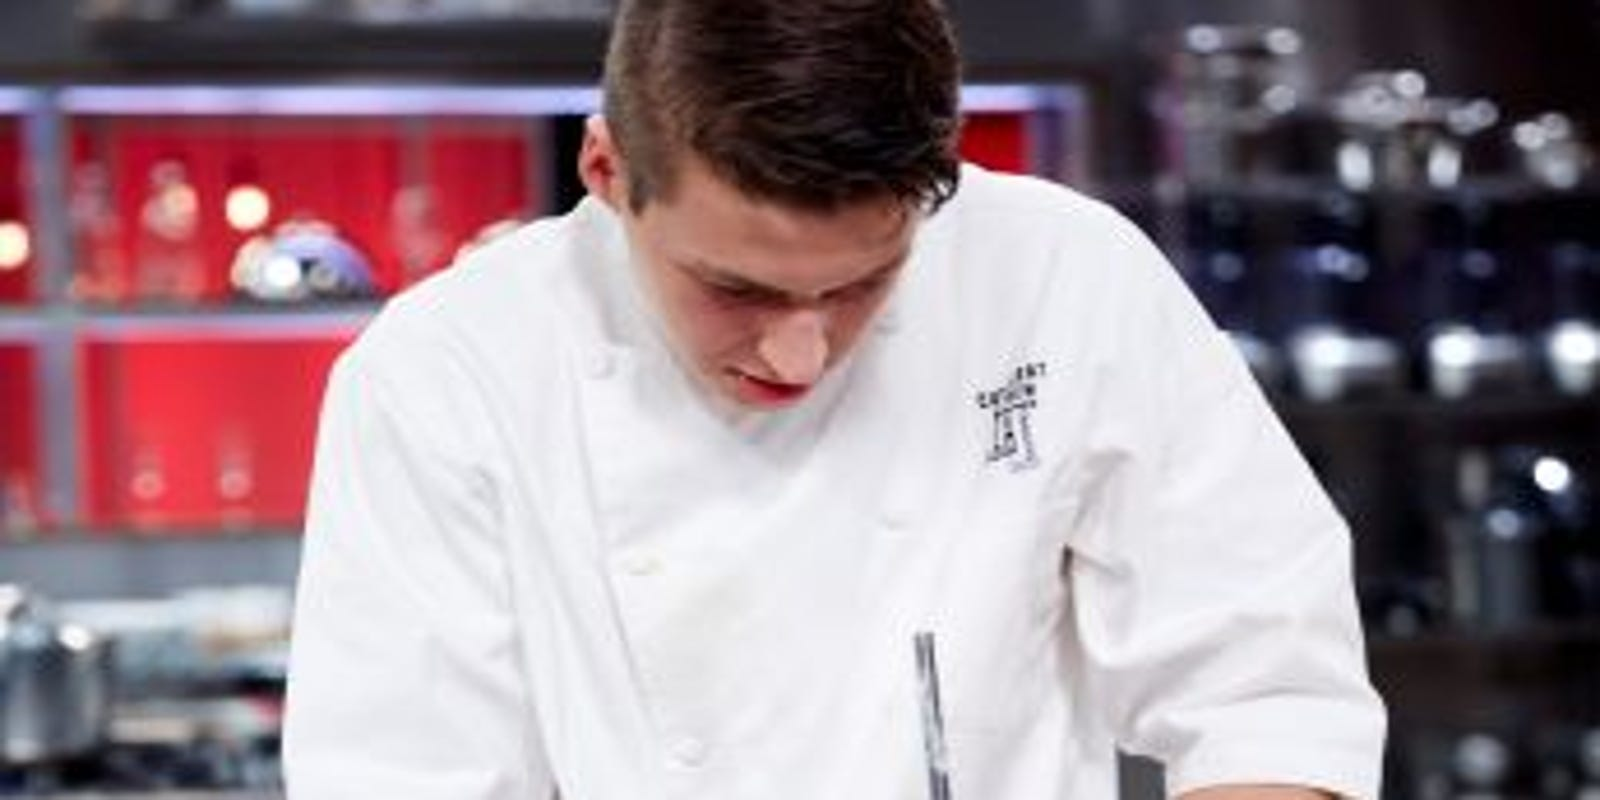 Scottsdale chef wins 'Cutthroat Kitchen